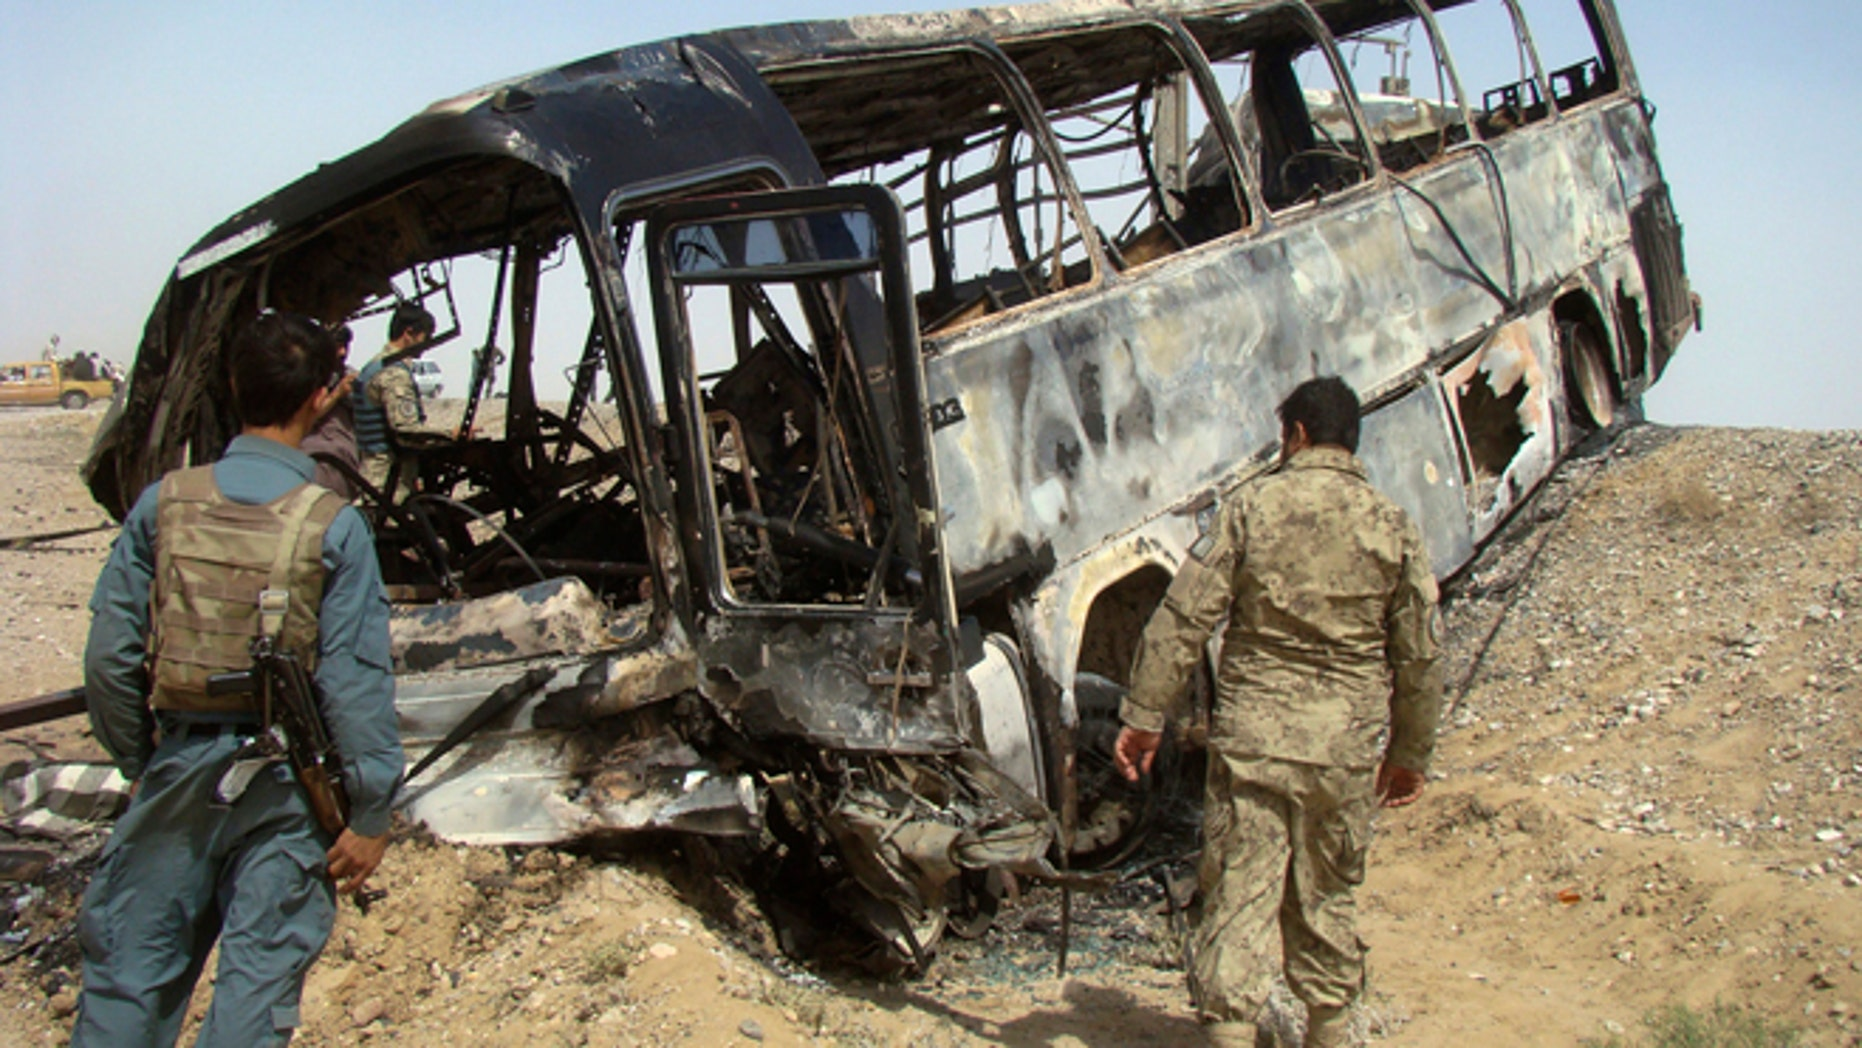 April 26: A bus near Helmand, Afghanistan, was attacked by Taliban insurgents, killing scores of people on the bus in a fiery crash.